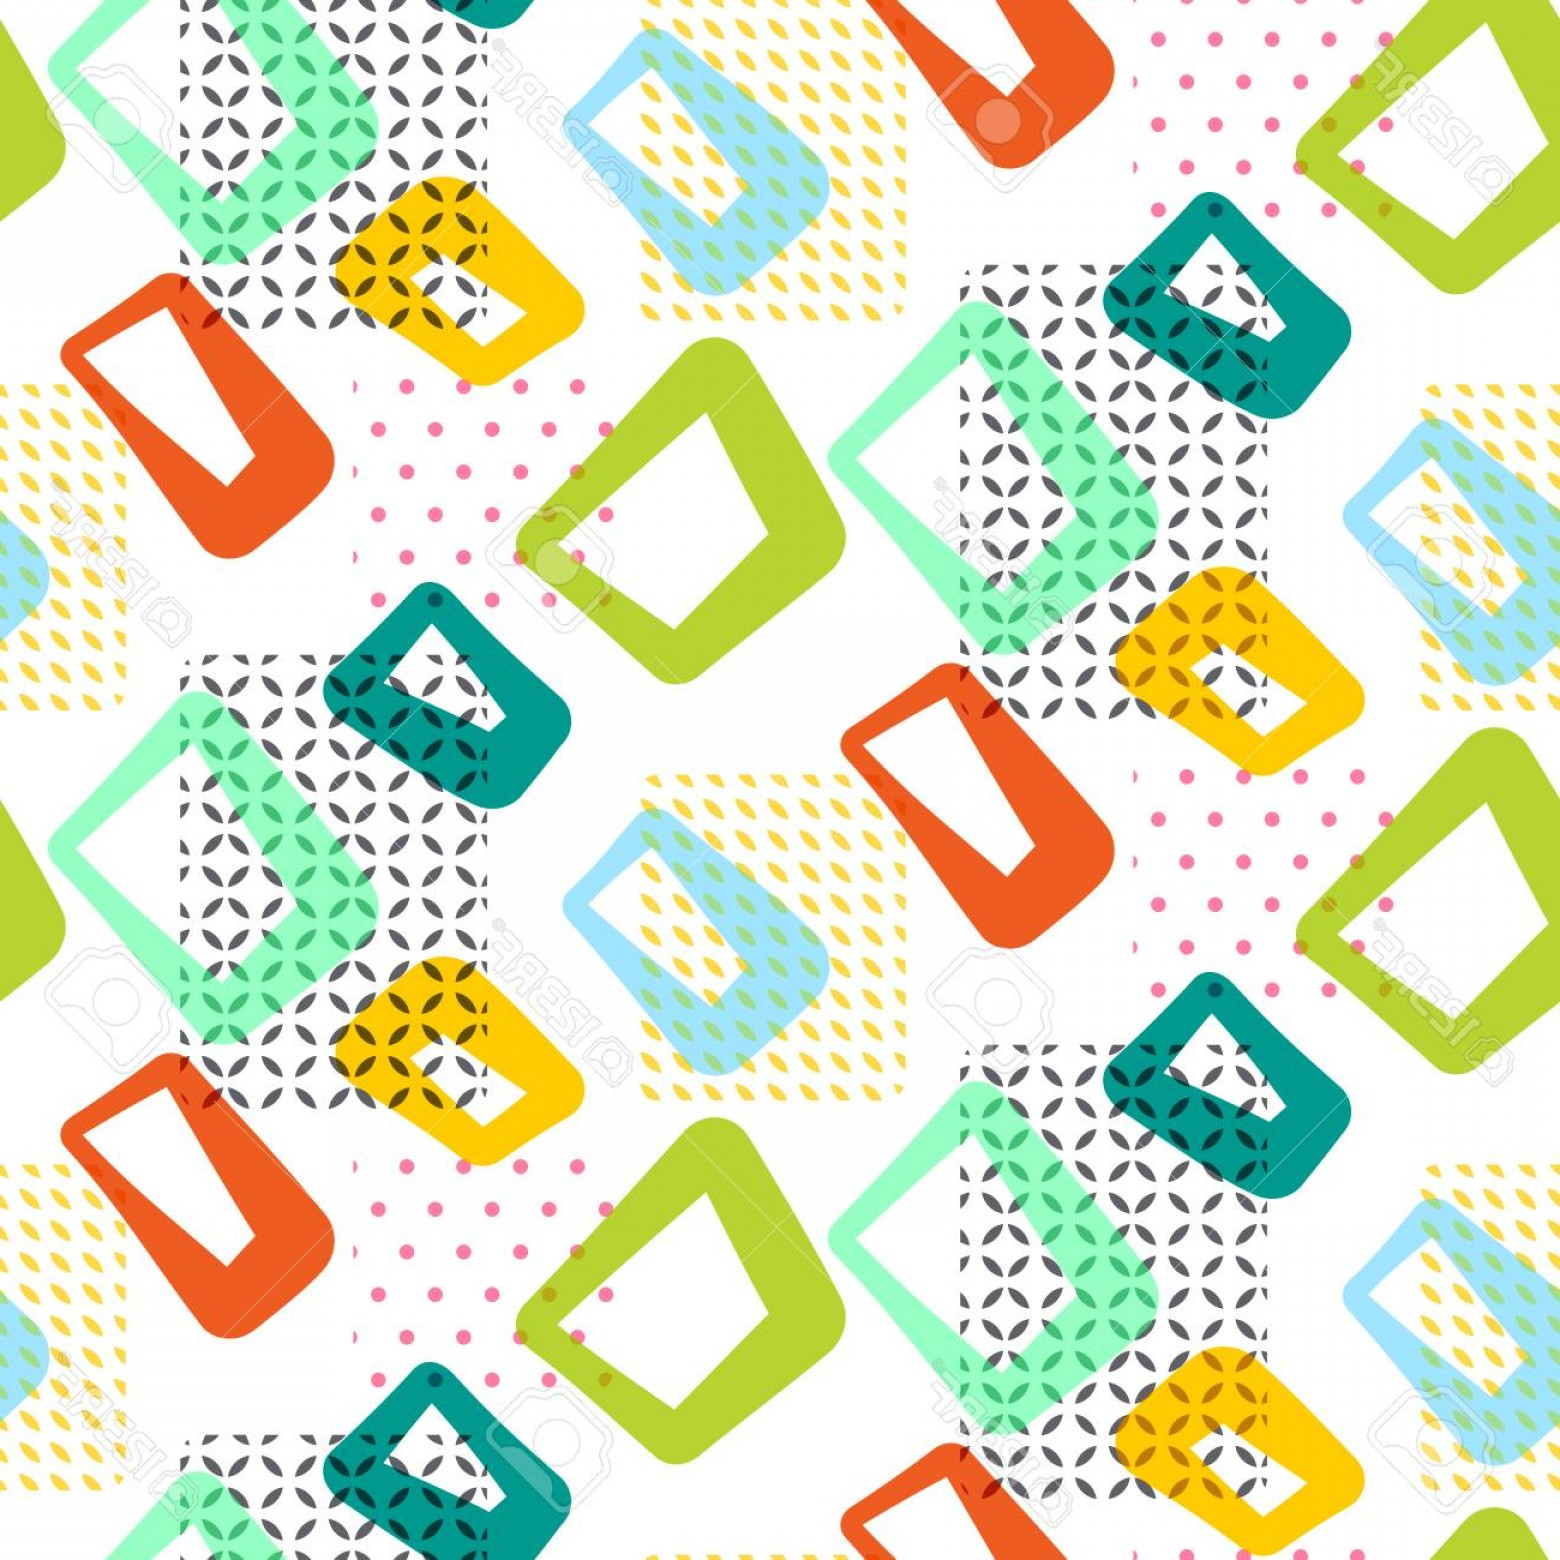 60s Vector: Photostock Vector Geometric Vintage S Seamless Vector Pattern Retro Sixties Yellow Green And Blue Shapes Surface Tex